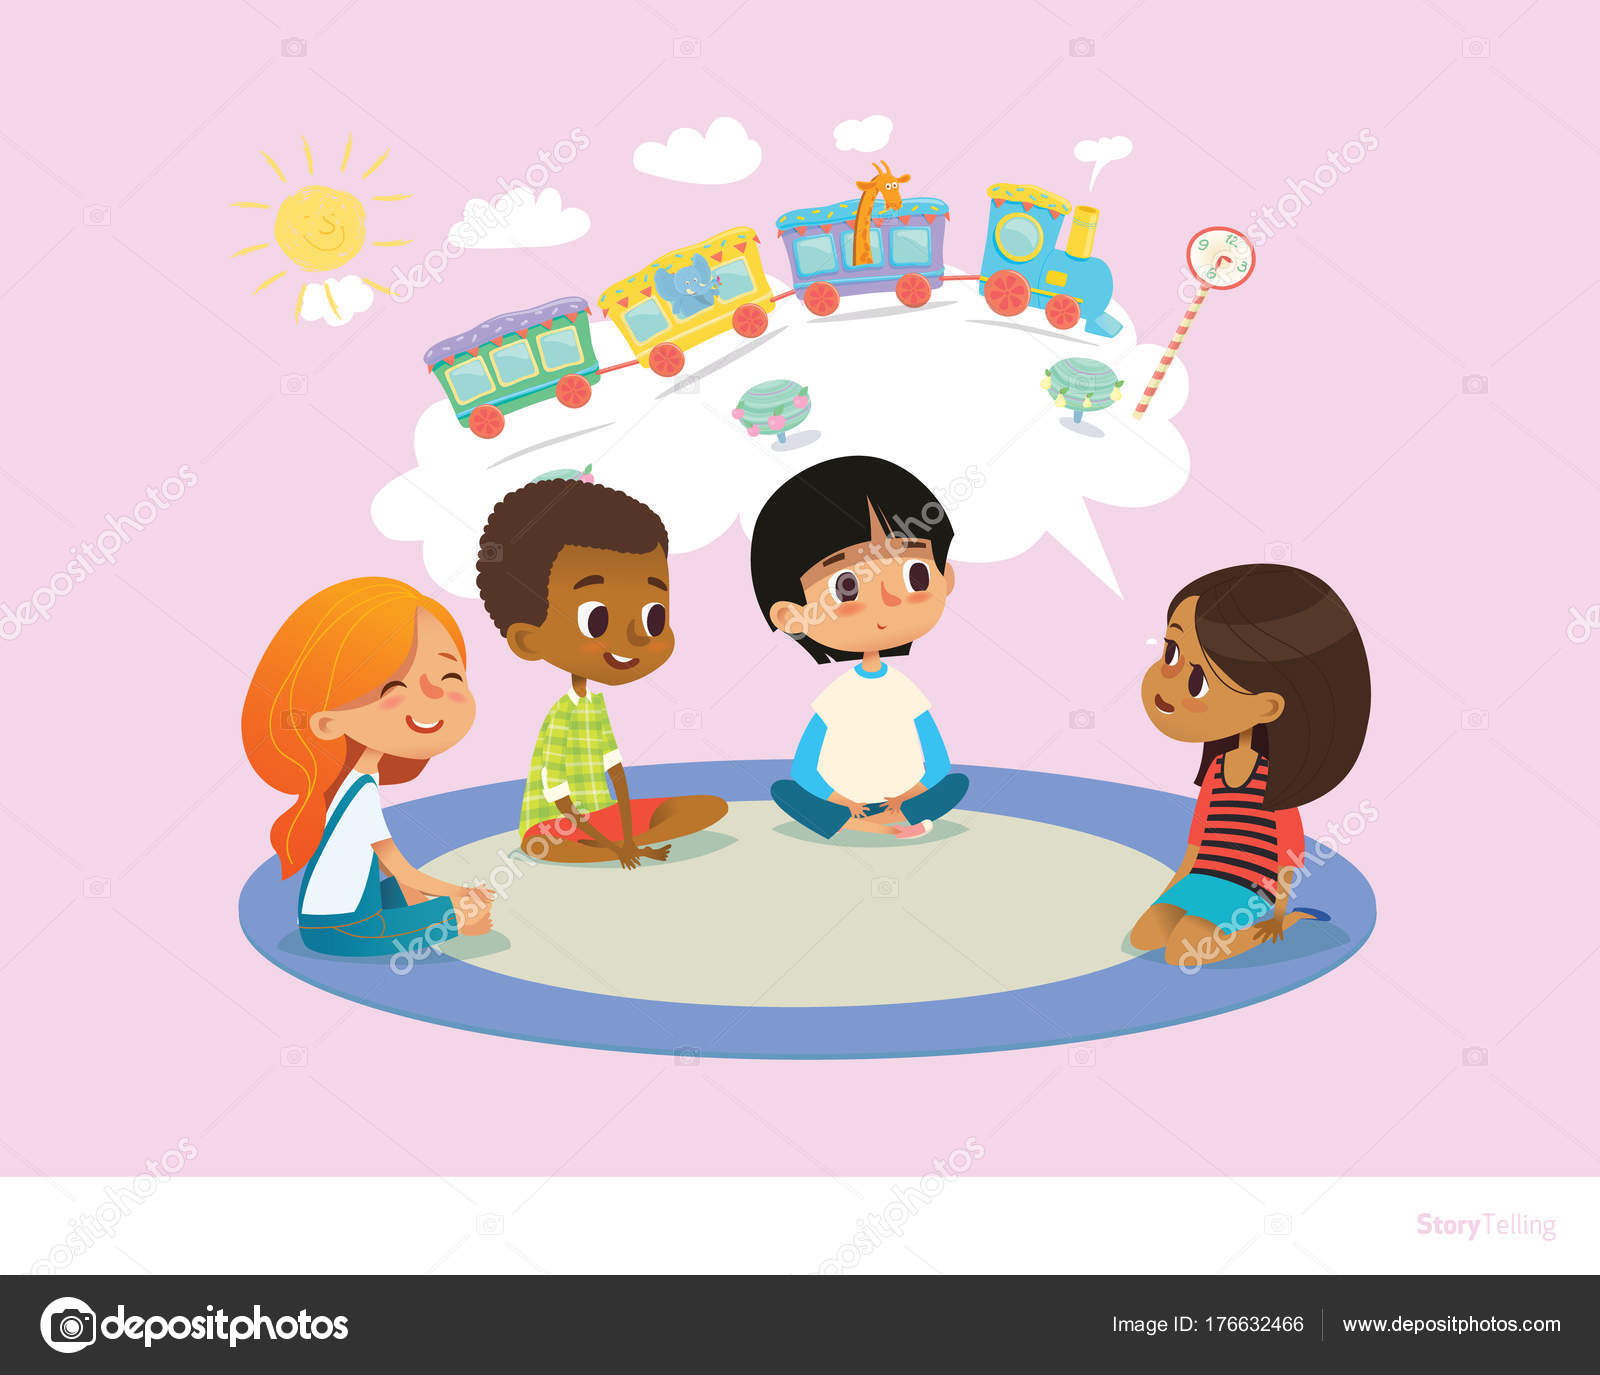 girl telling fairy tale to other children sitting on round carpet